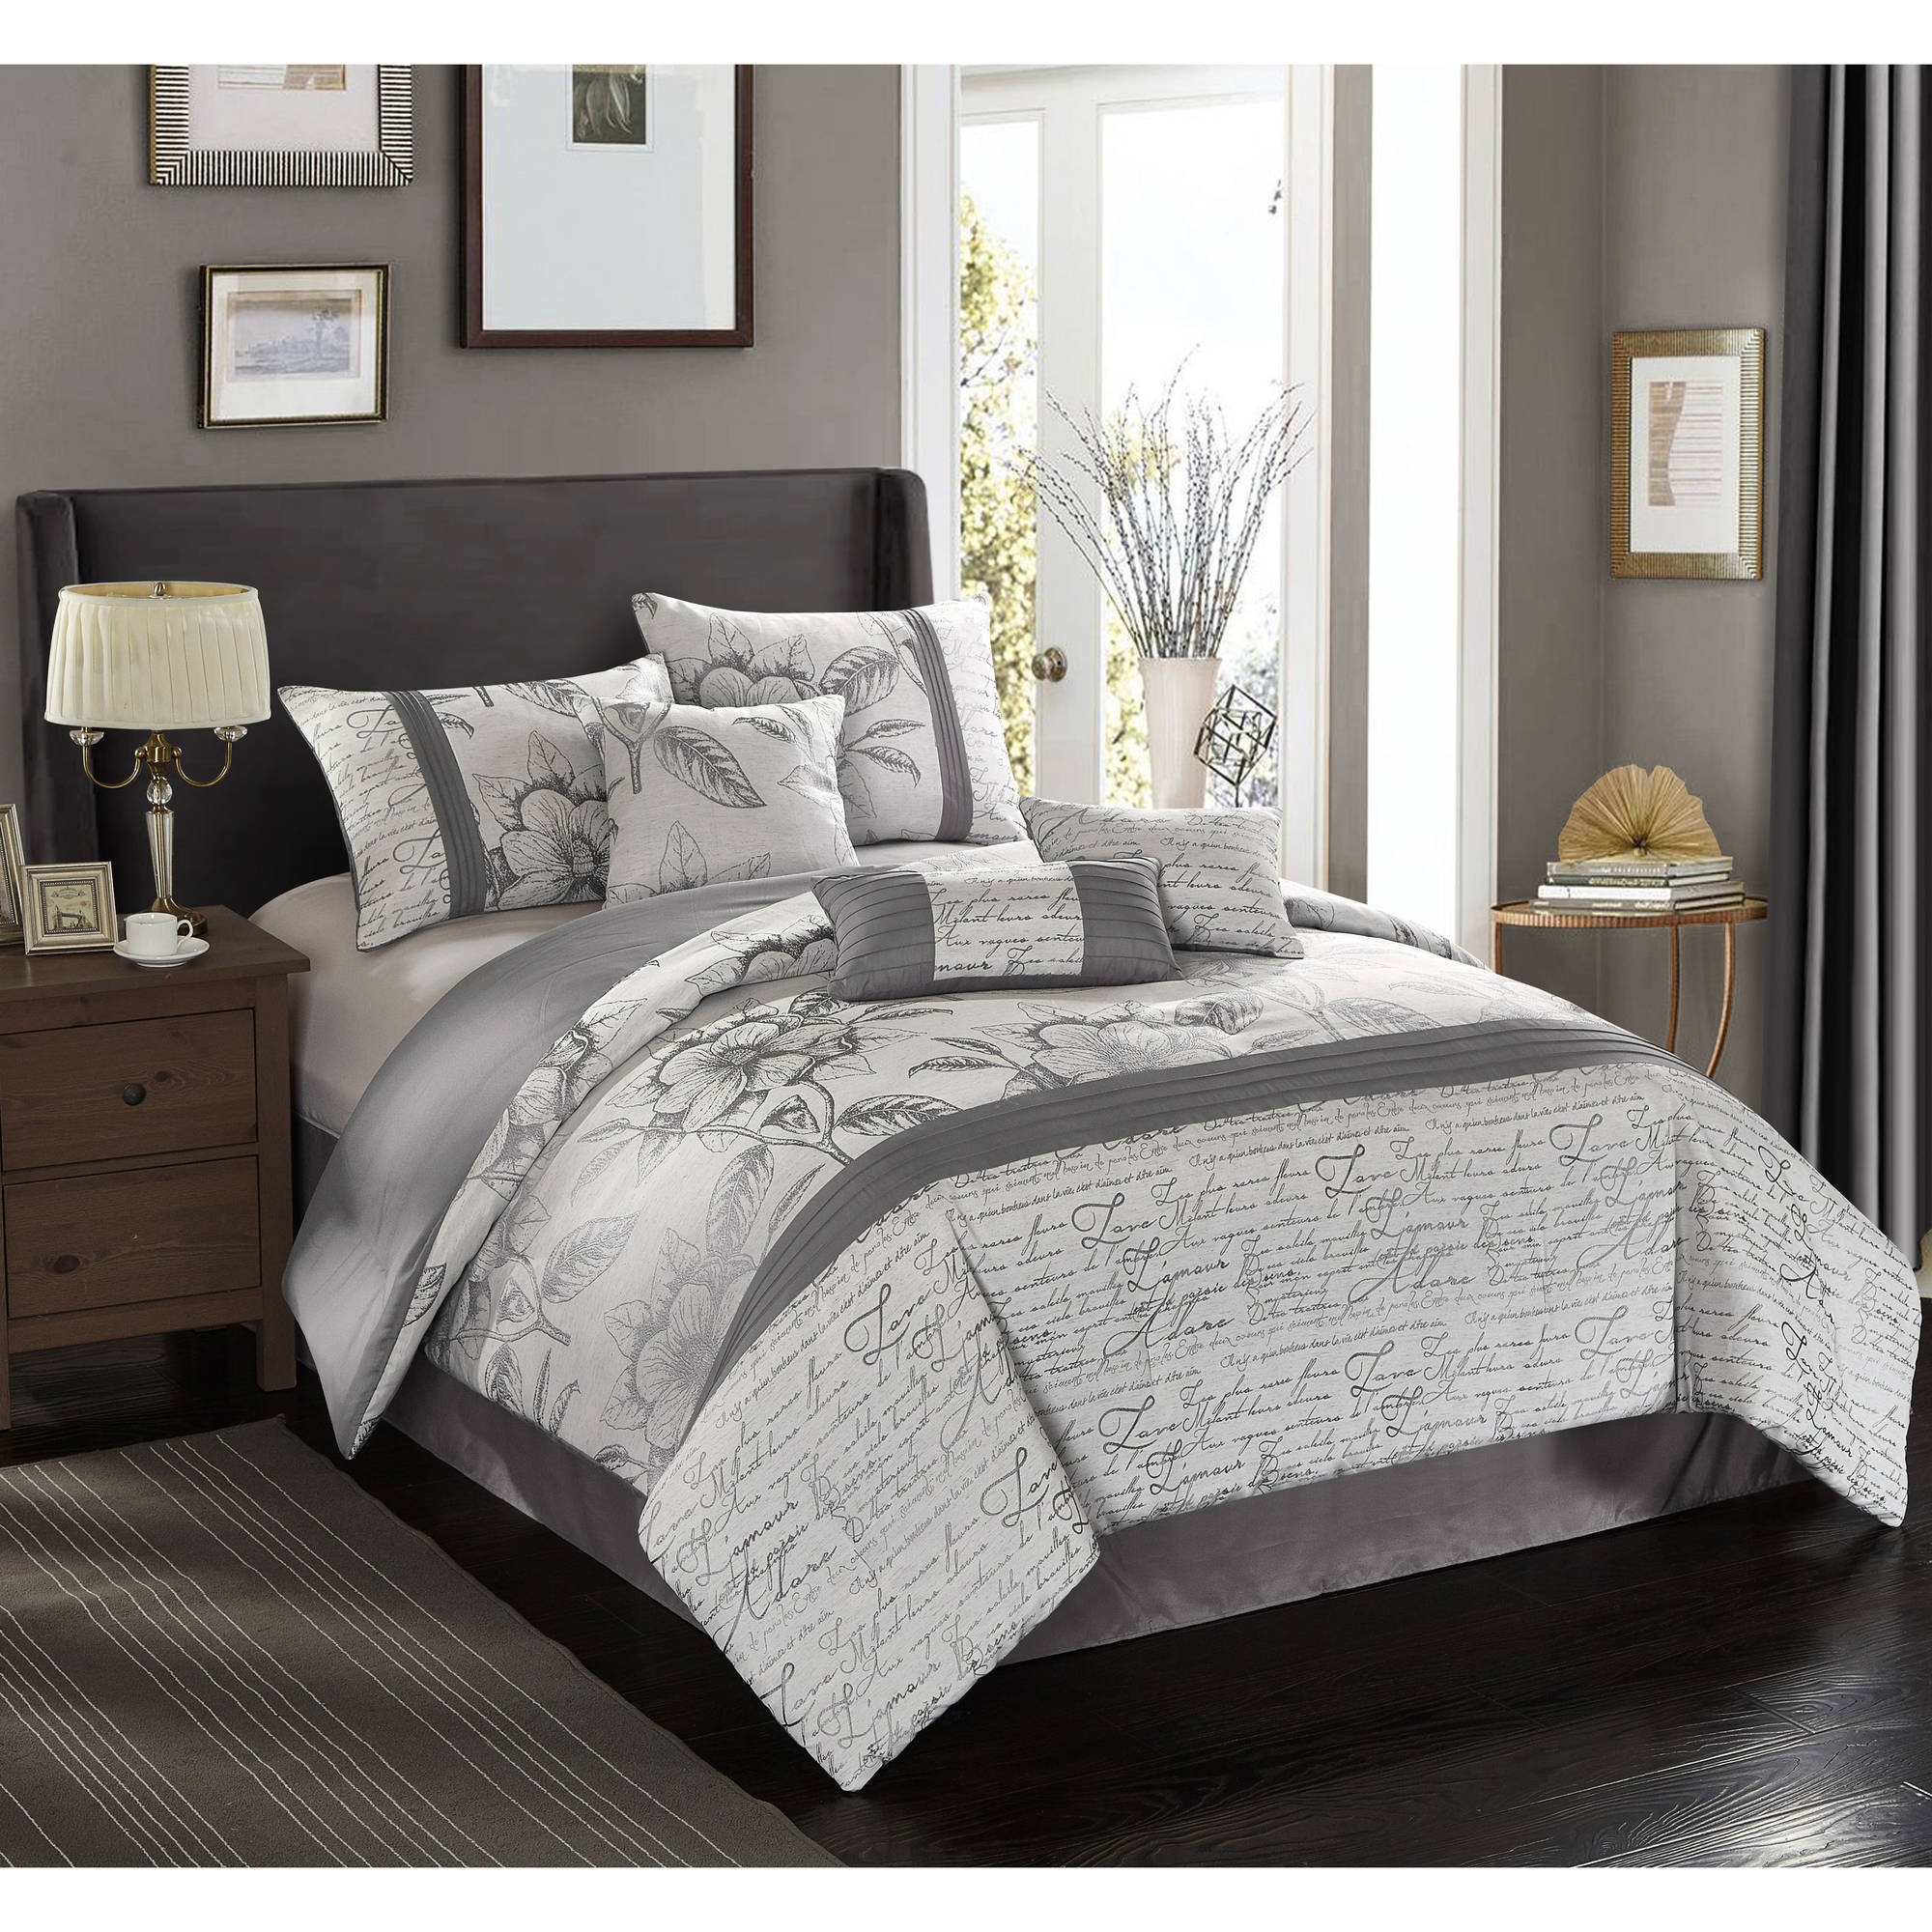 nursery and minogue flat set range luxury drop embroidered inspiration satin at gorgeous kylie sheet black sets bedroom bedspread house include of leopard curtains pillowcases jacquard cover baby scenic crib silver duvet fraser queen collections bedding personable throw print dead comforter zangge